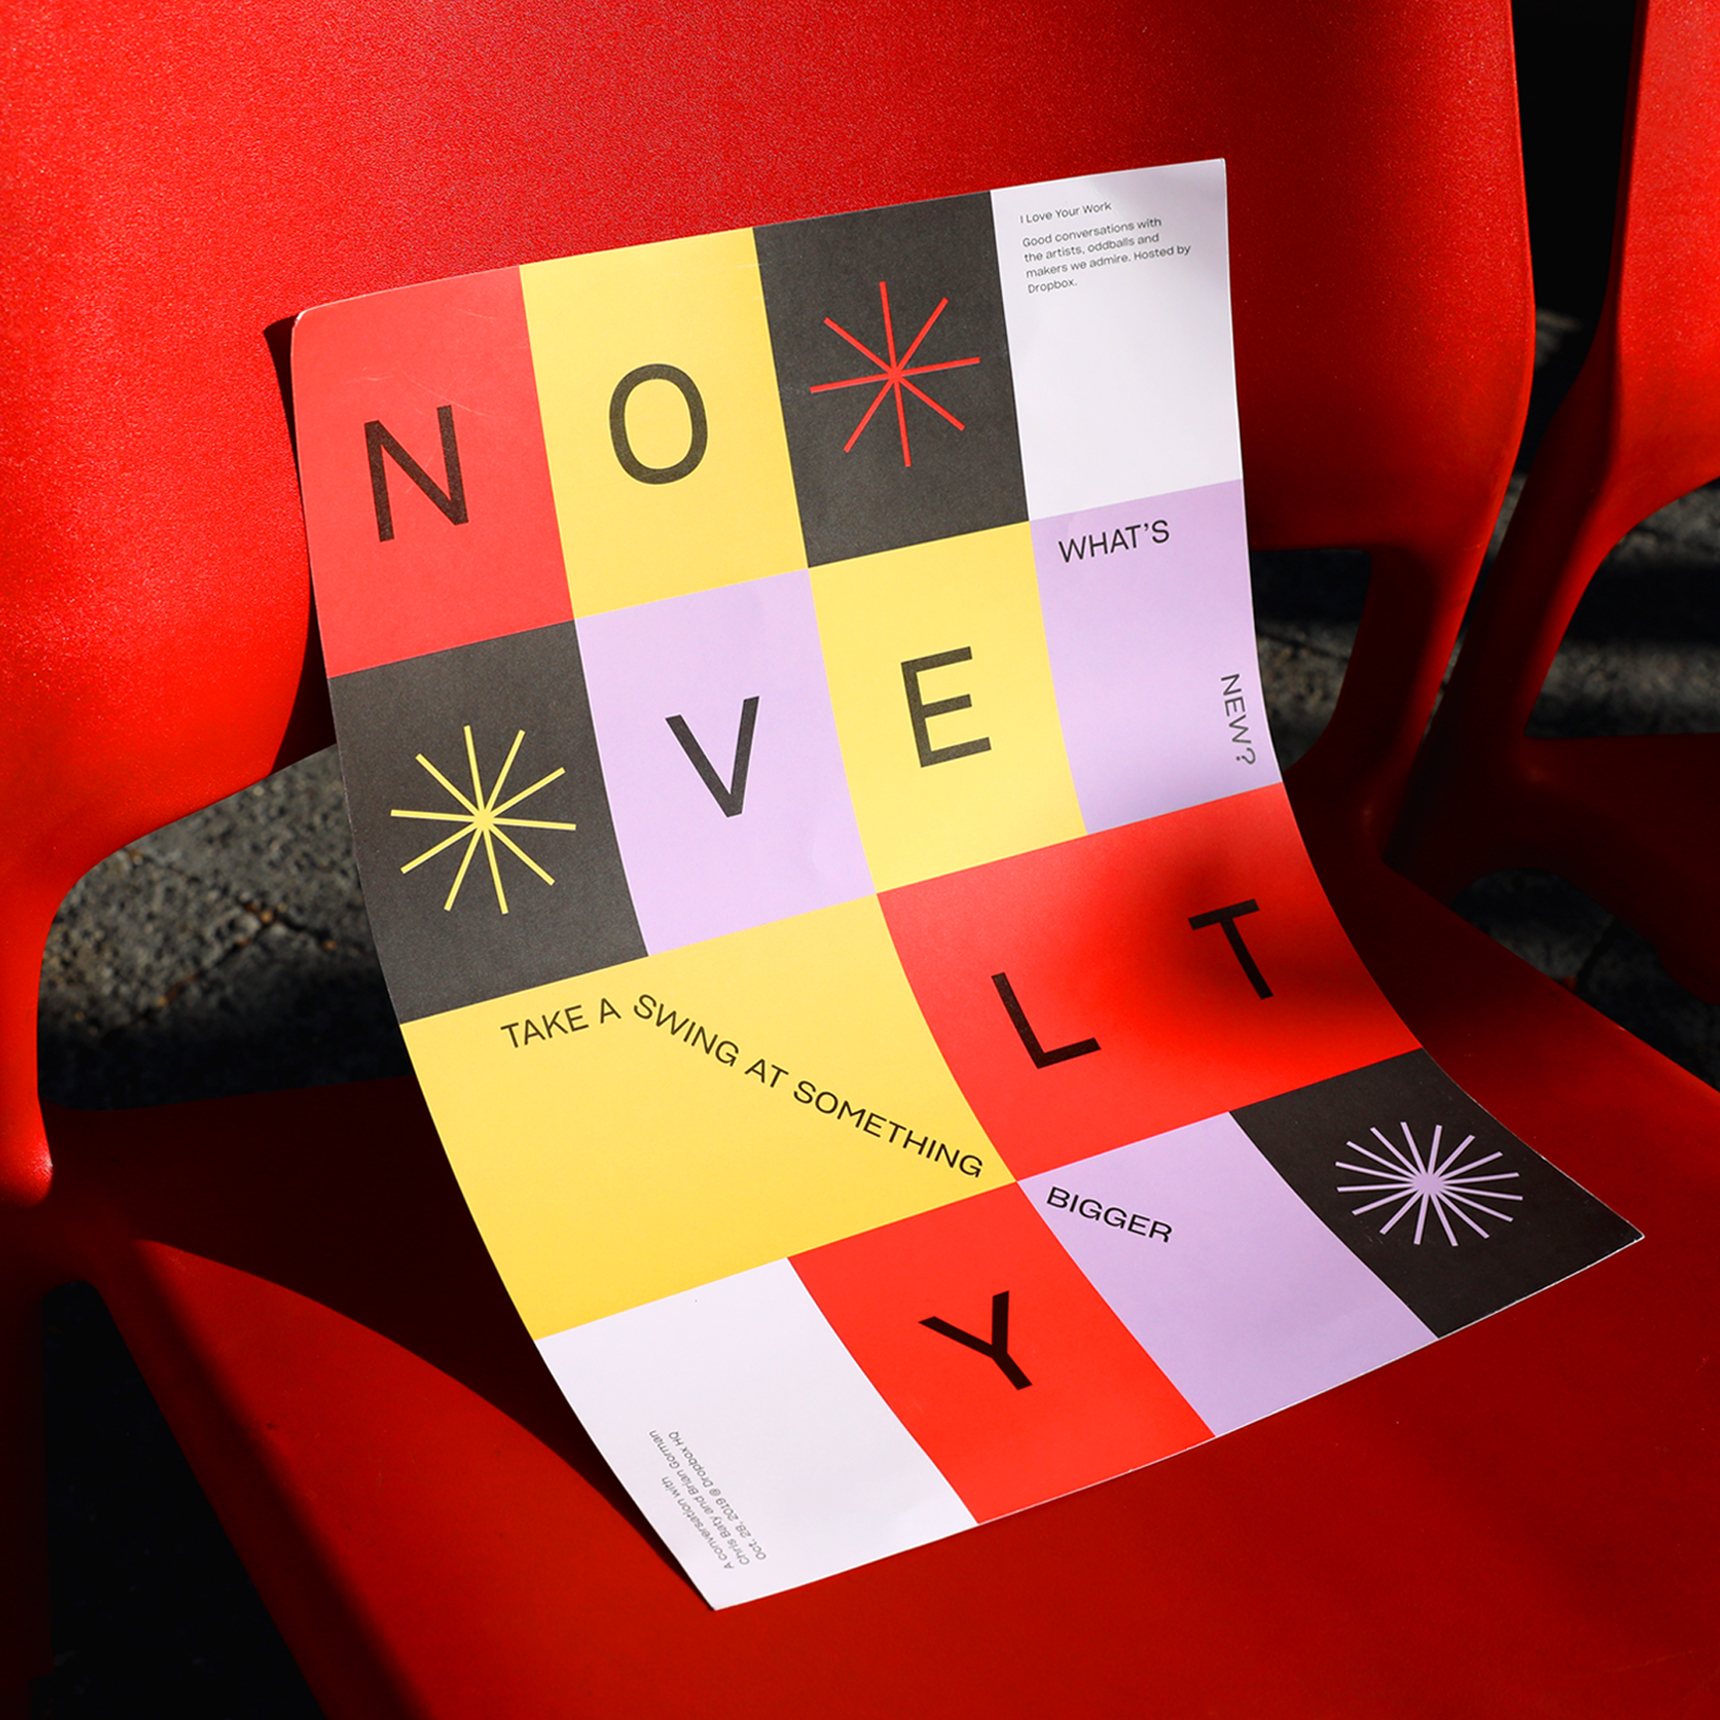 I Love Your Work: On Novelty